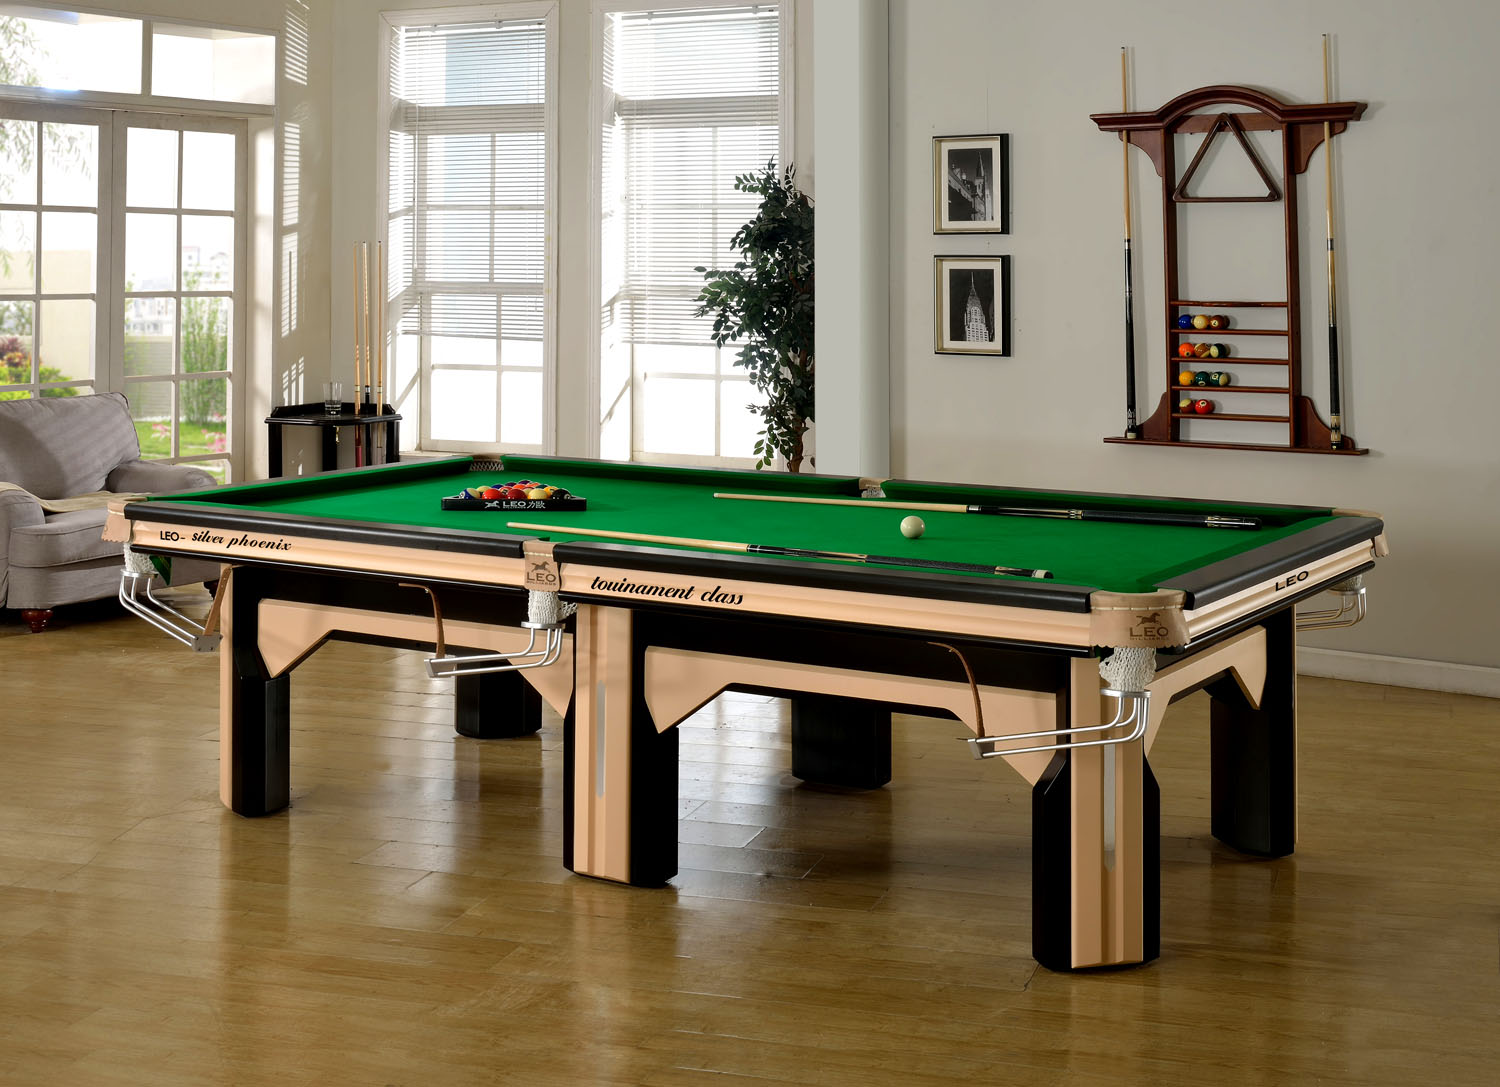 http://www.legobilliards.com.cn/upload/images/201506/14349339487459.jpg